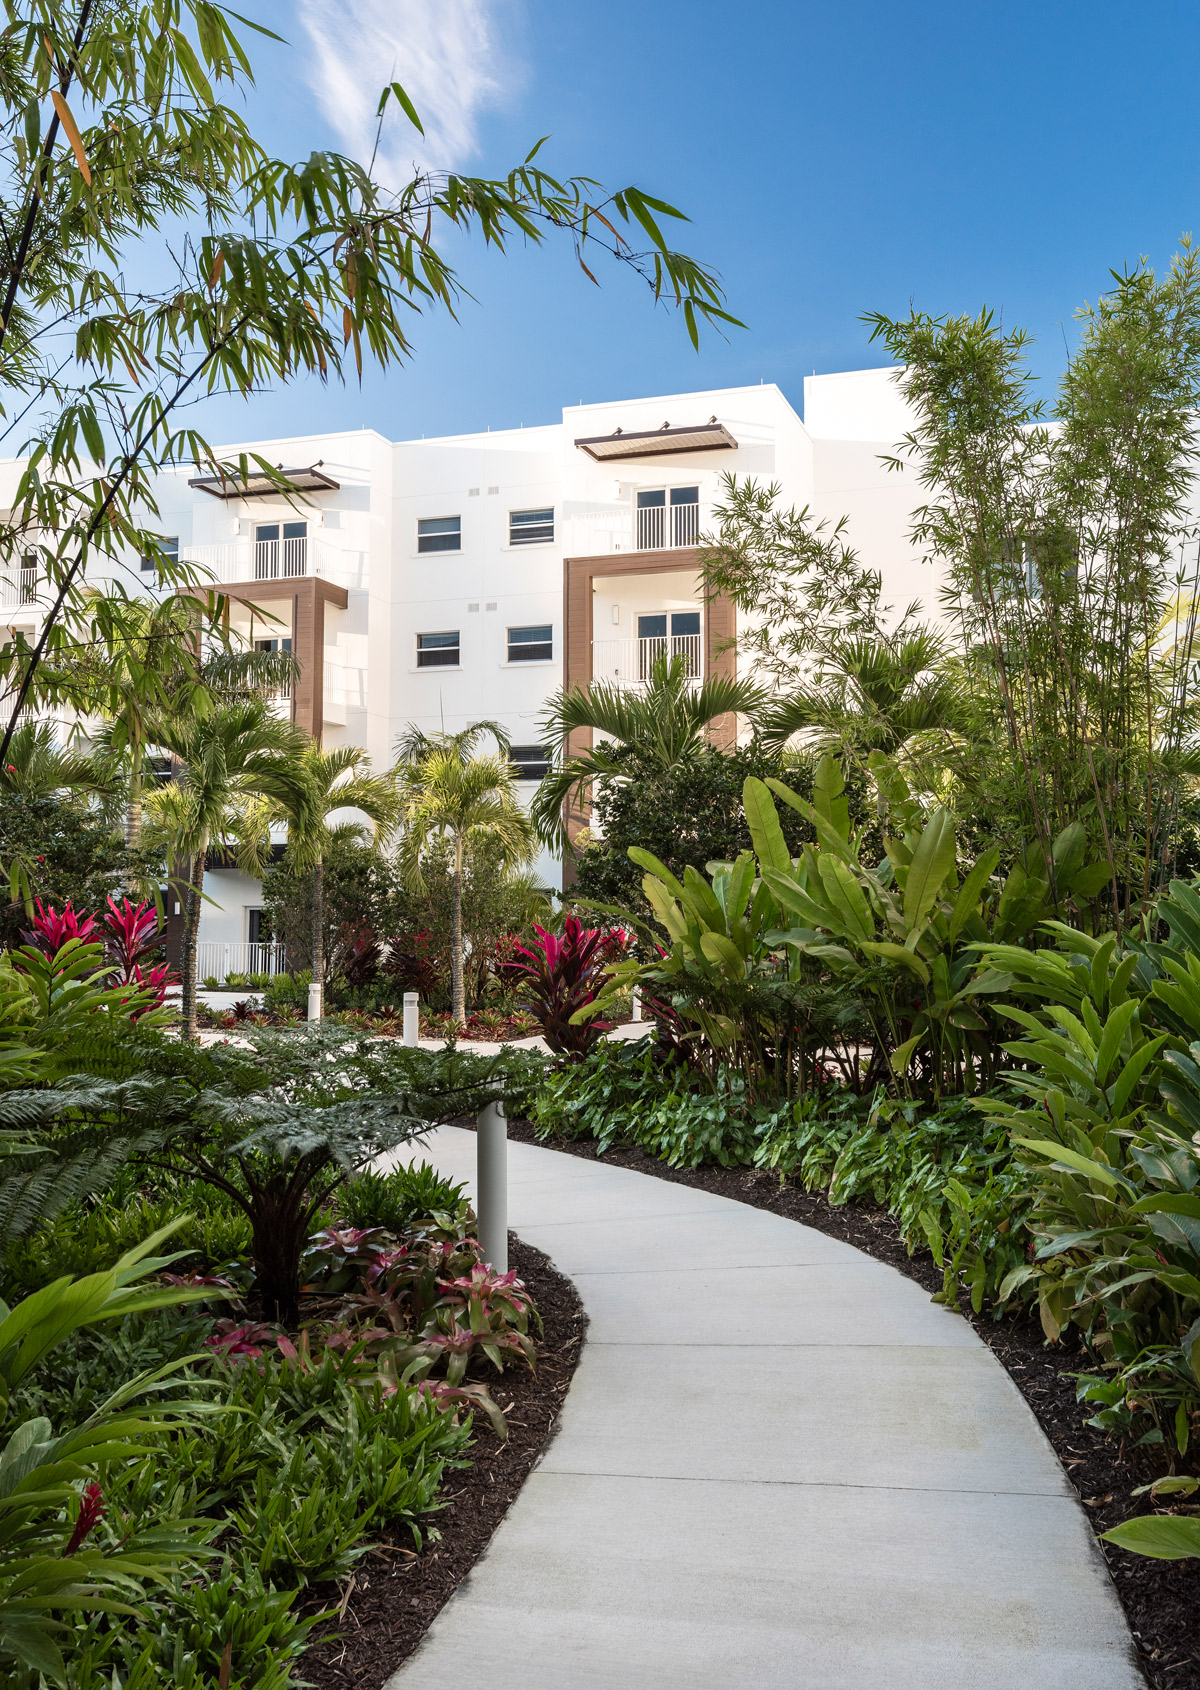 While crossing through the courtyards throughout the campus you will be greeted by beautiful Florida folage which continually bloom and attract butterflies.